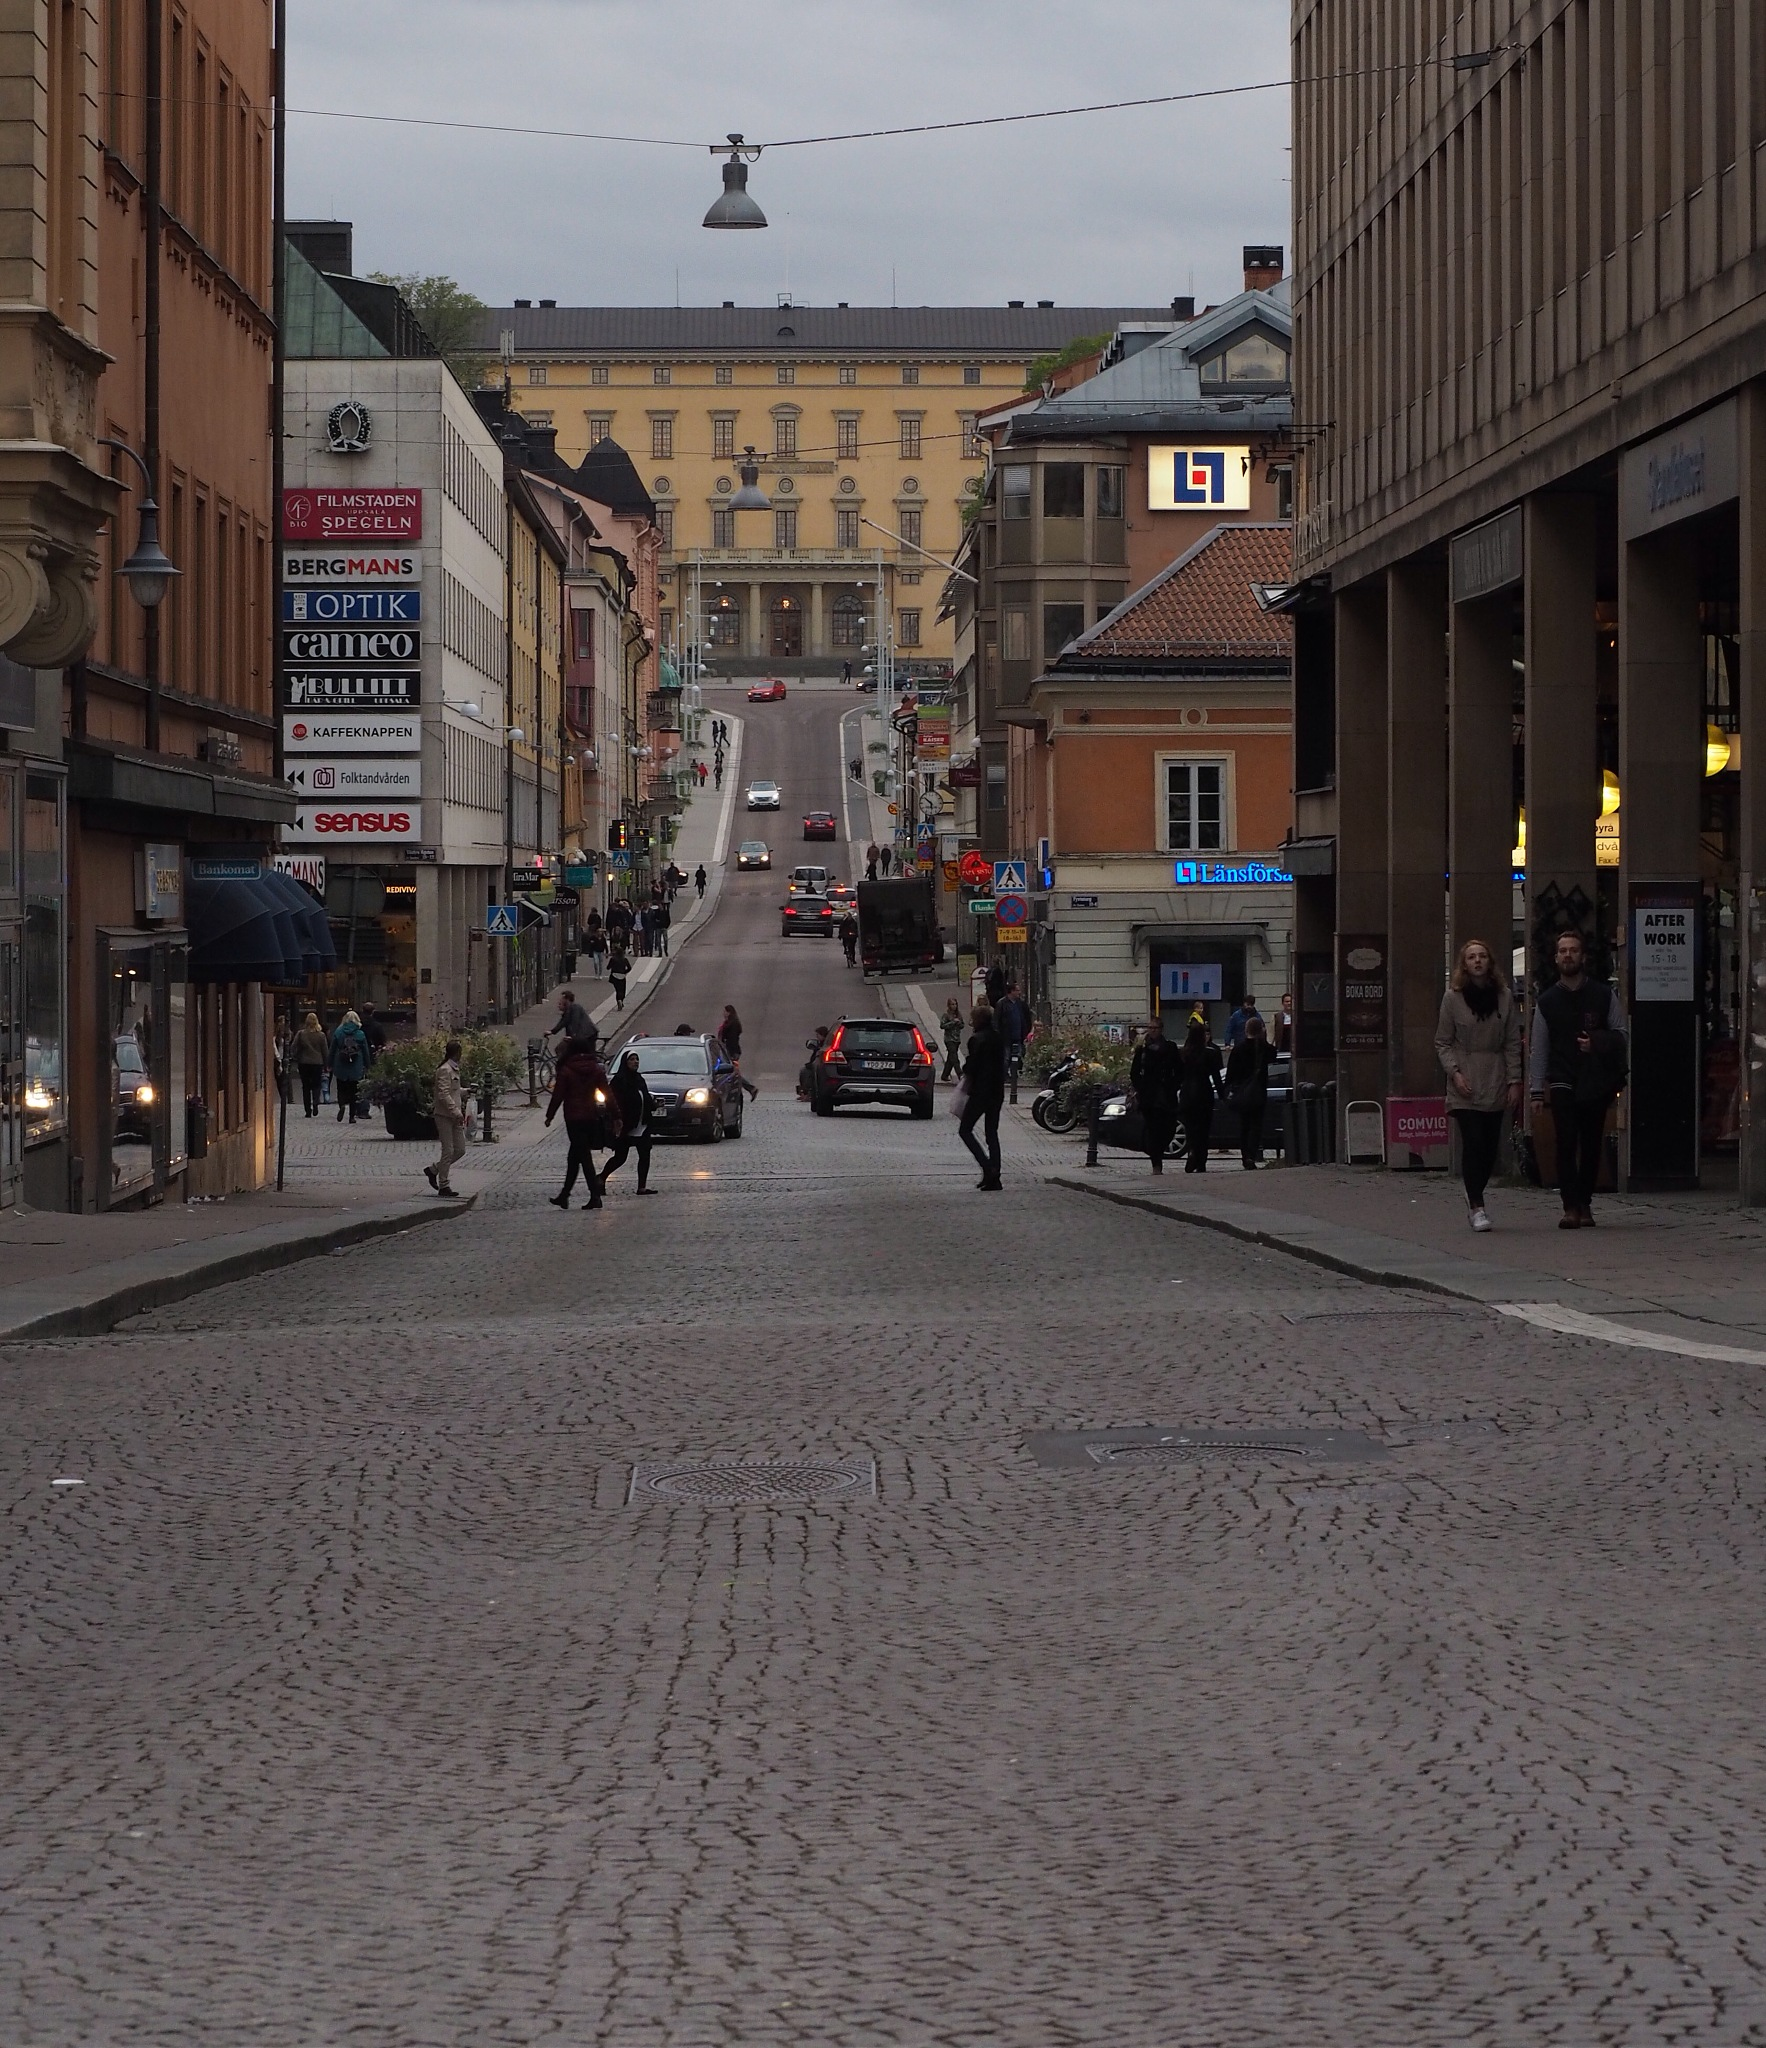 From Uppsala, Sweden by lundhanders